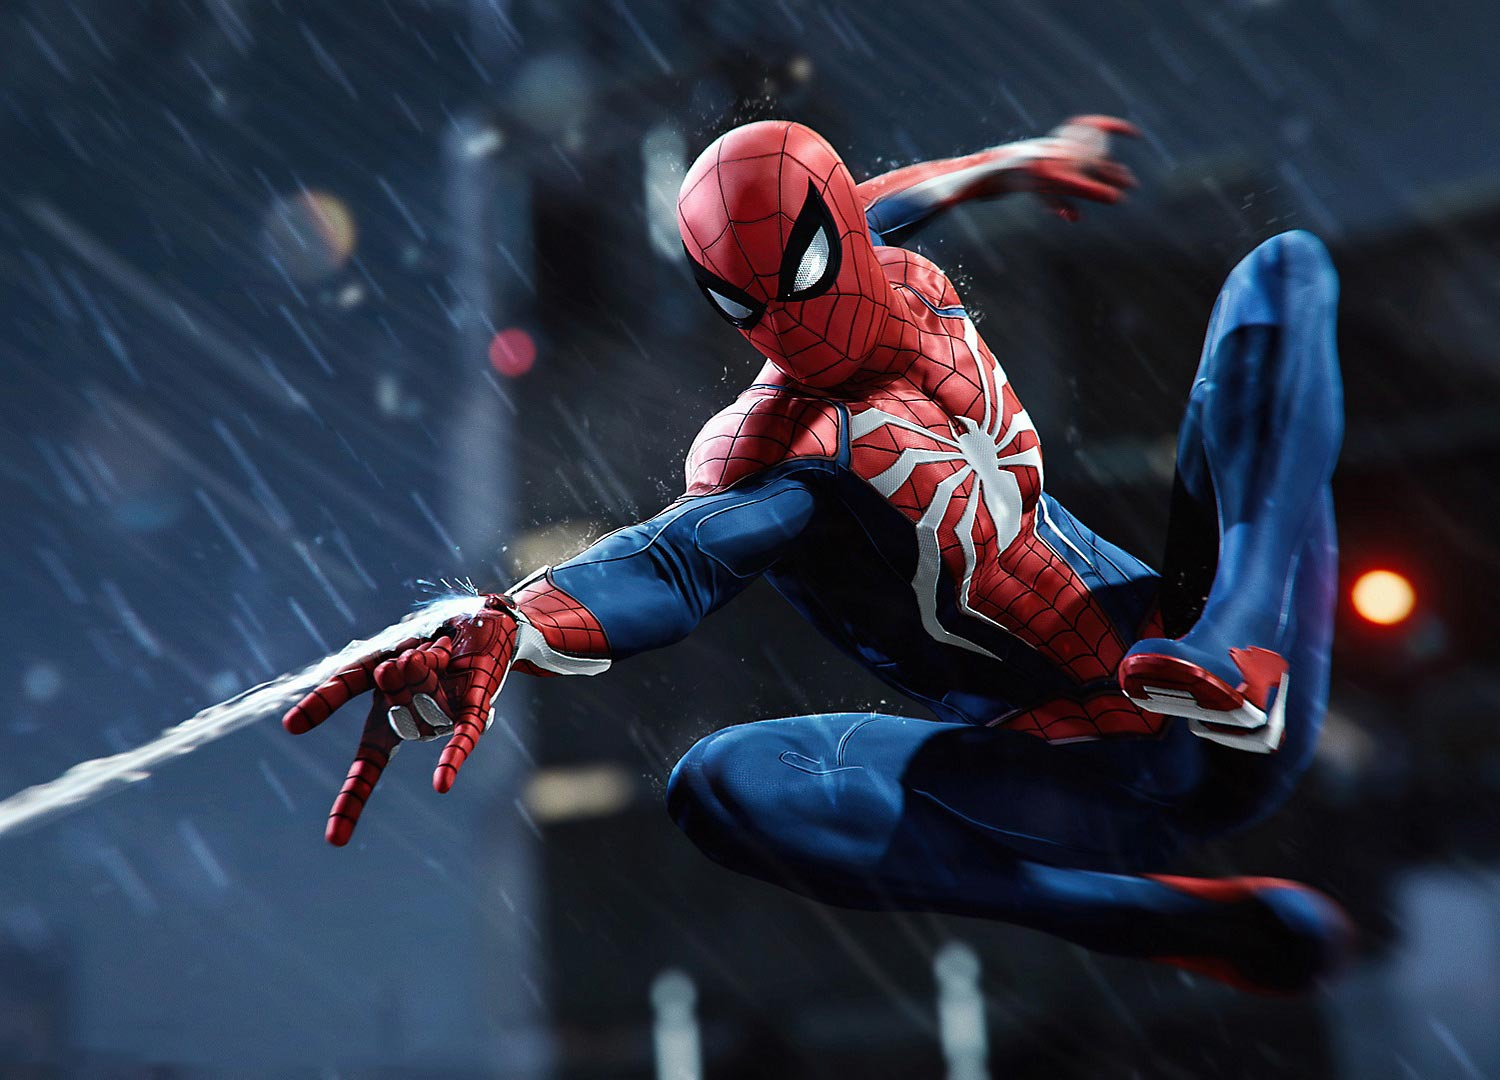 Spider-Man Gameplay Trailer Is More Music Video, Less Gameplay Showcase